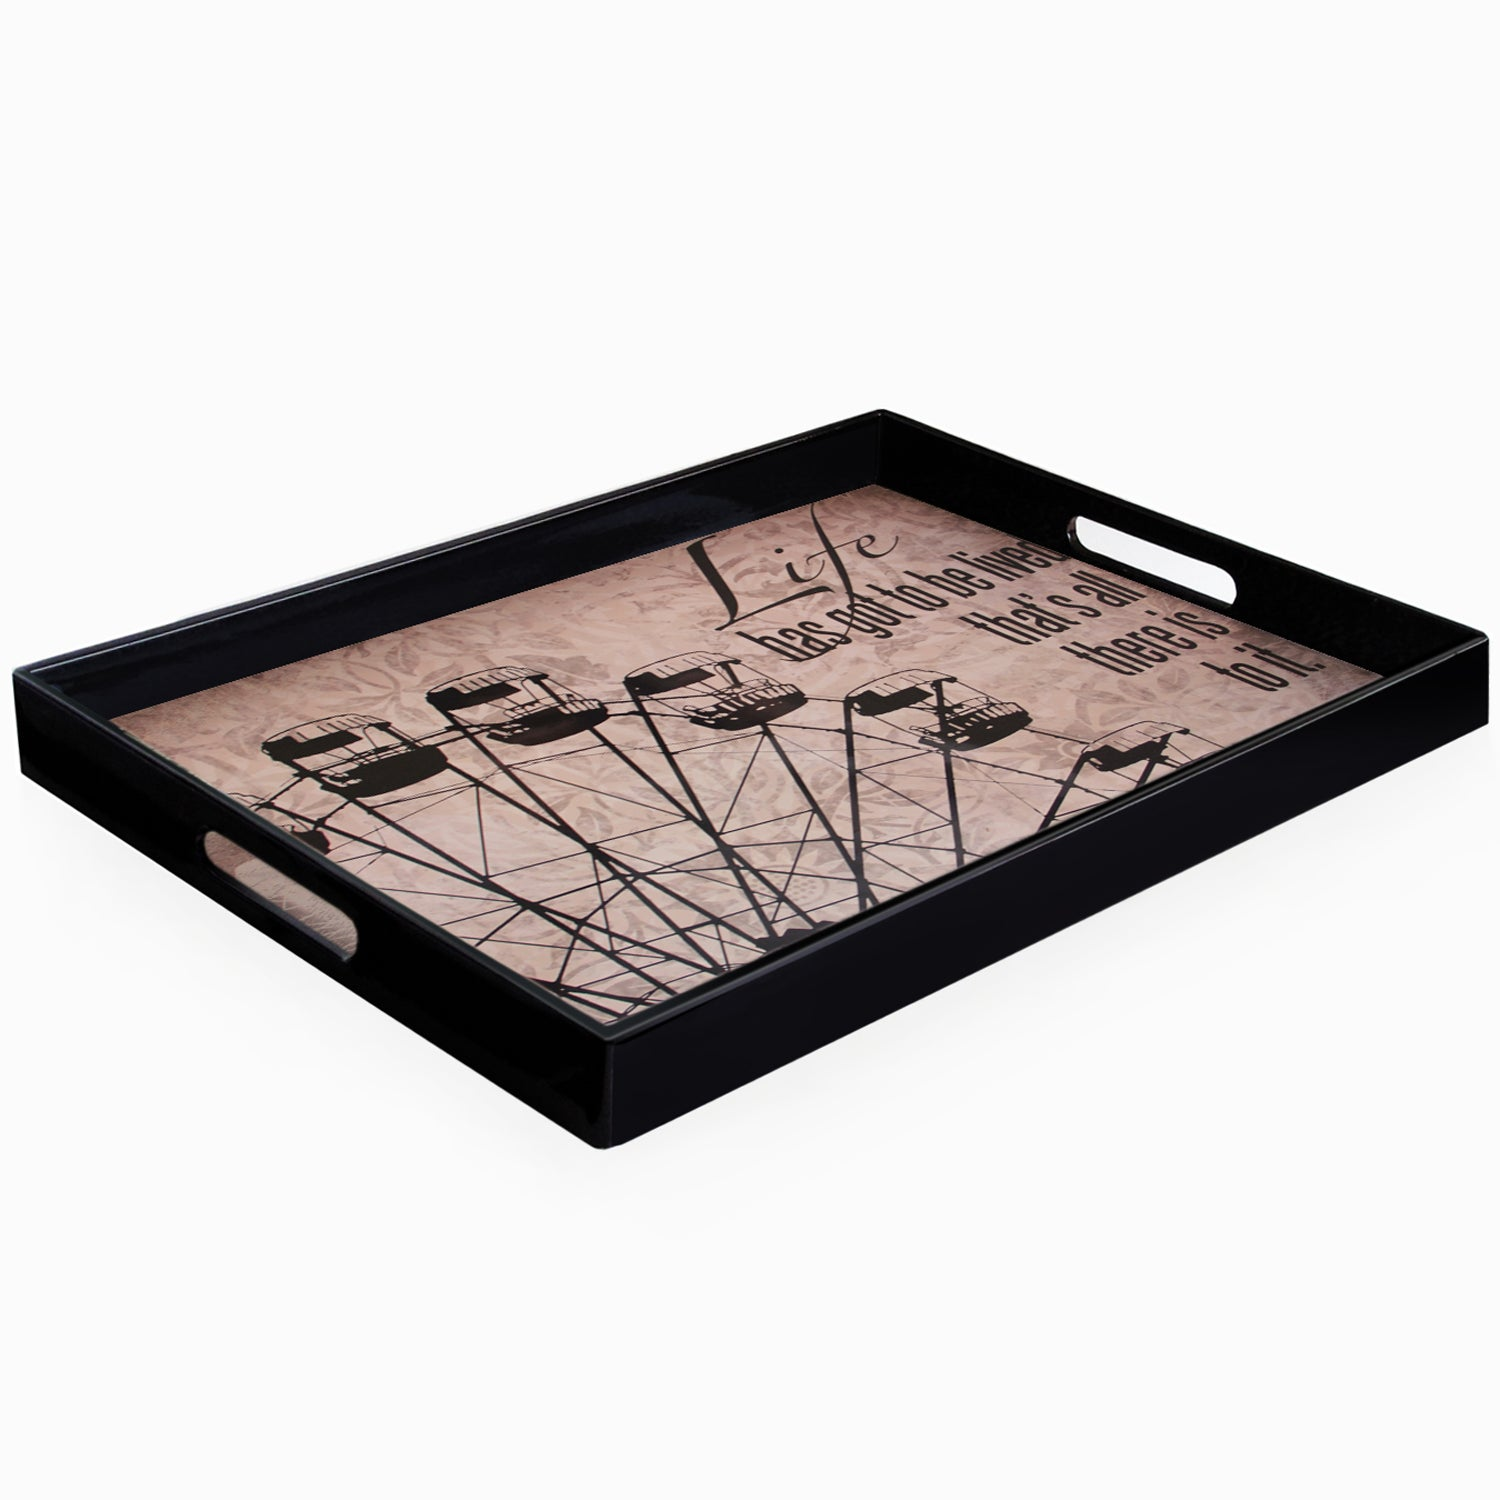 Accents by Jay Impressions Carousel Serving Tray with Handles